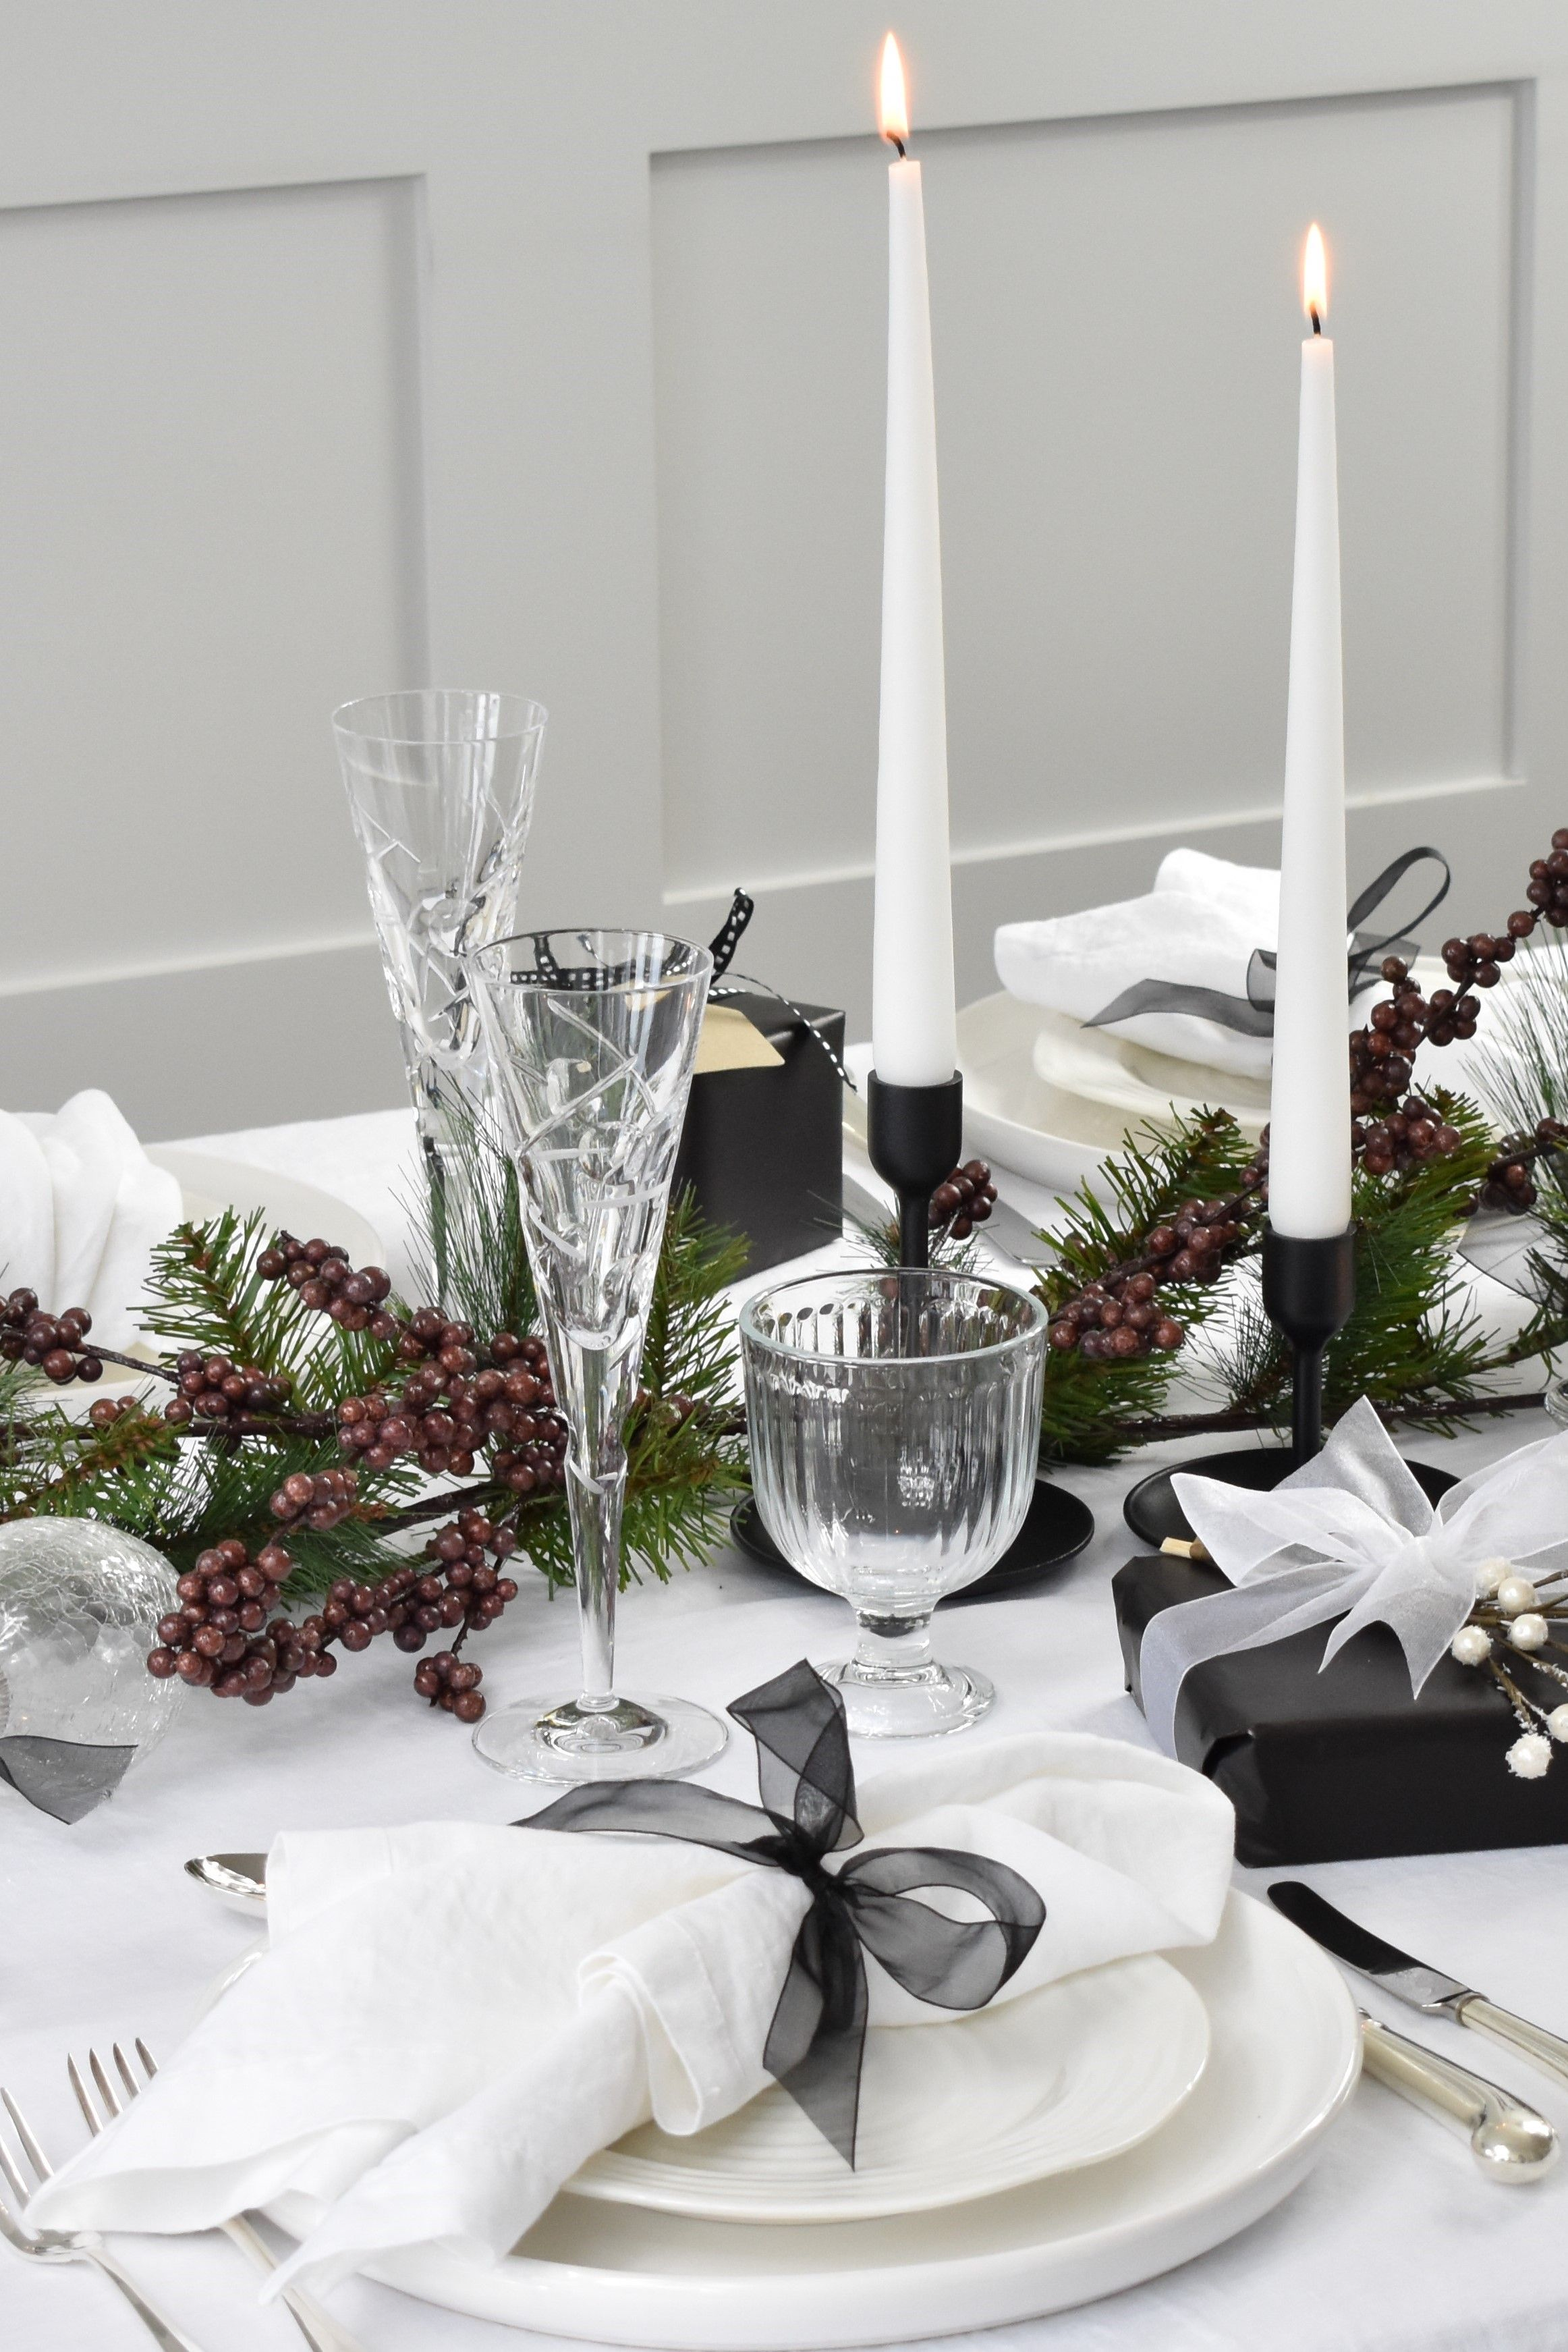 Will Iowa Have A White Christmas 2020 Still White Linen Napkin in 2020 | White linen napkins, Christmas